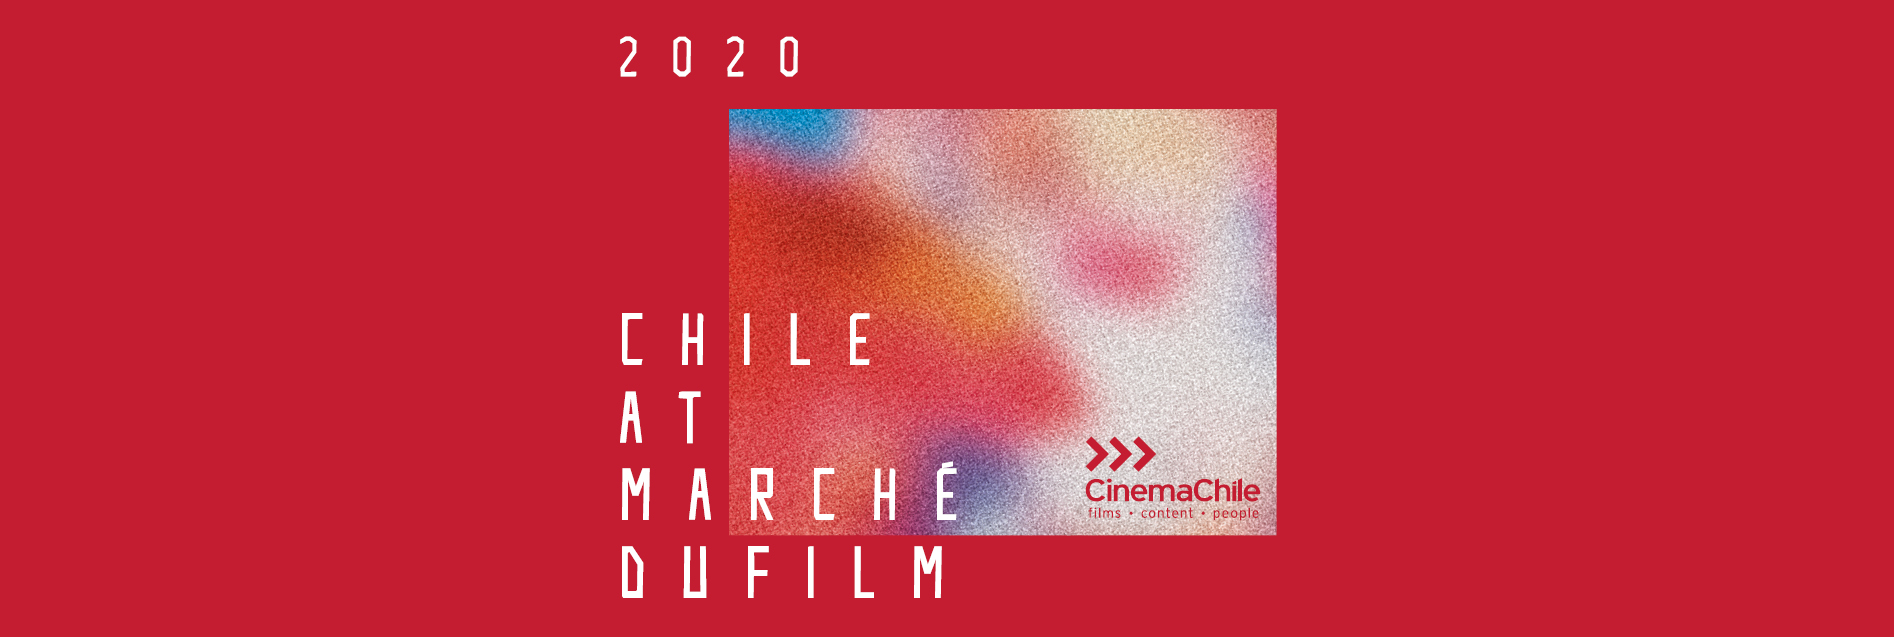 Chile is present at the Marché du Film in Cannes with a renewed cinematographic offer